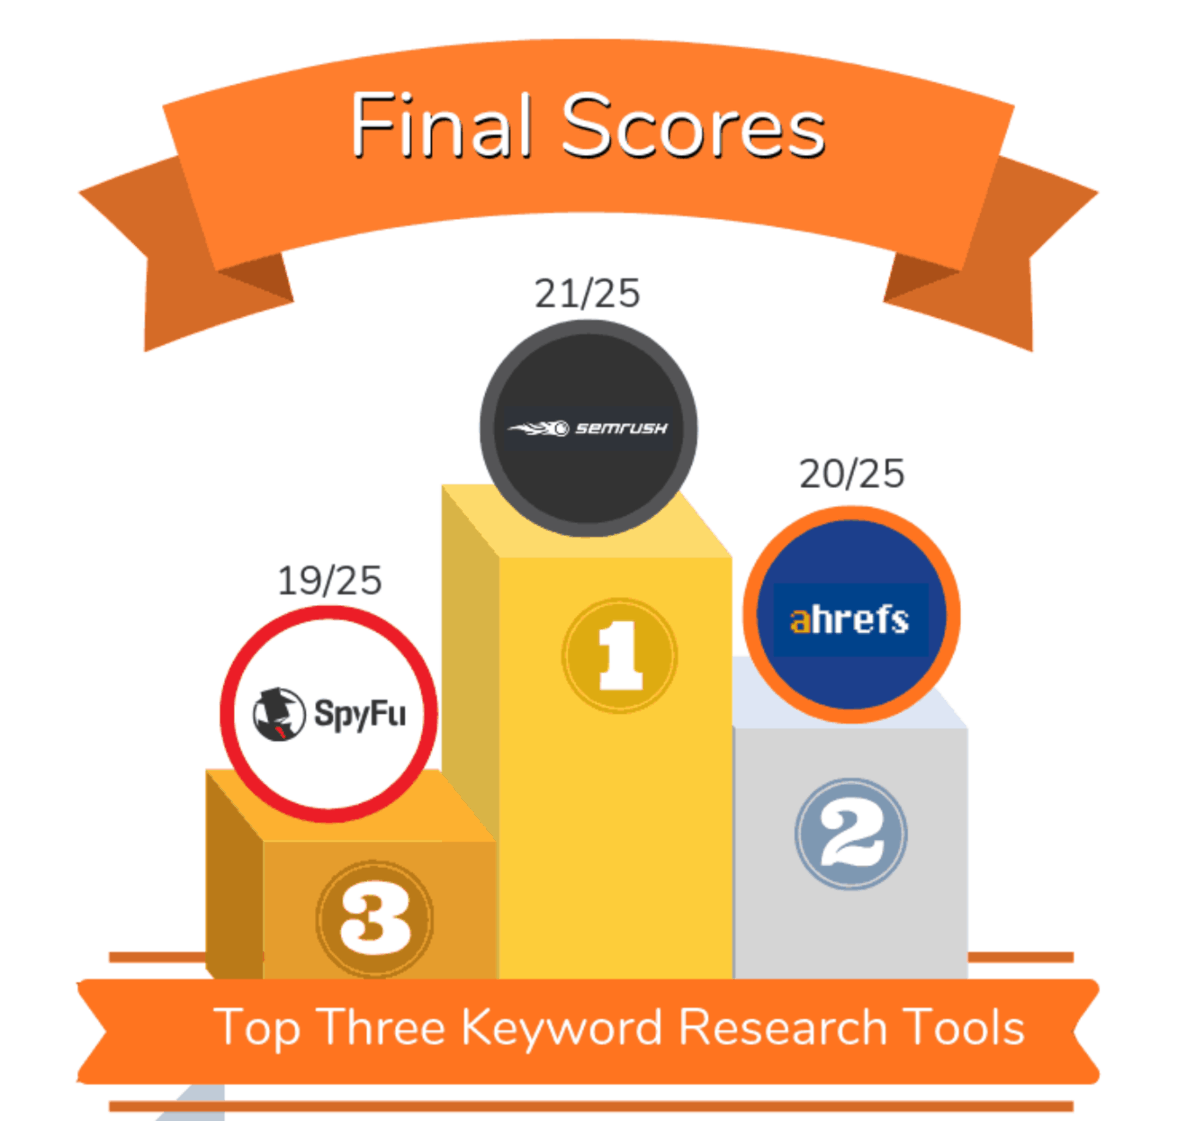 Top Three Keyword Research Tools